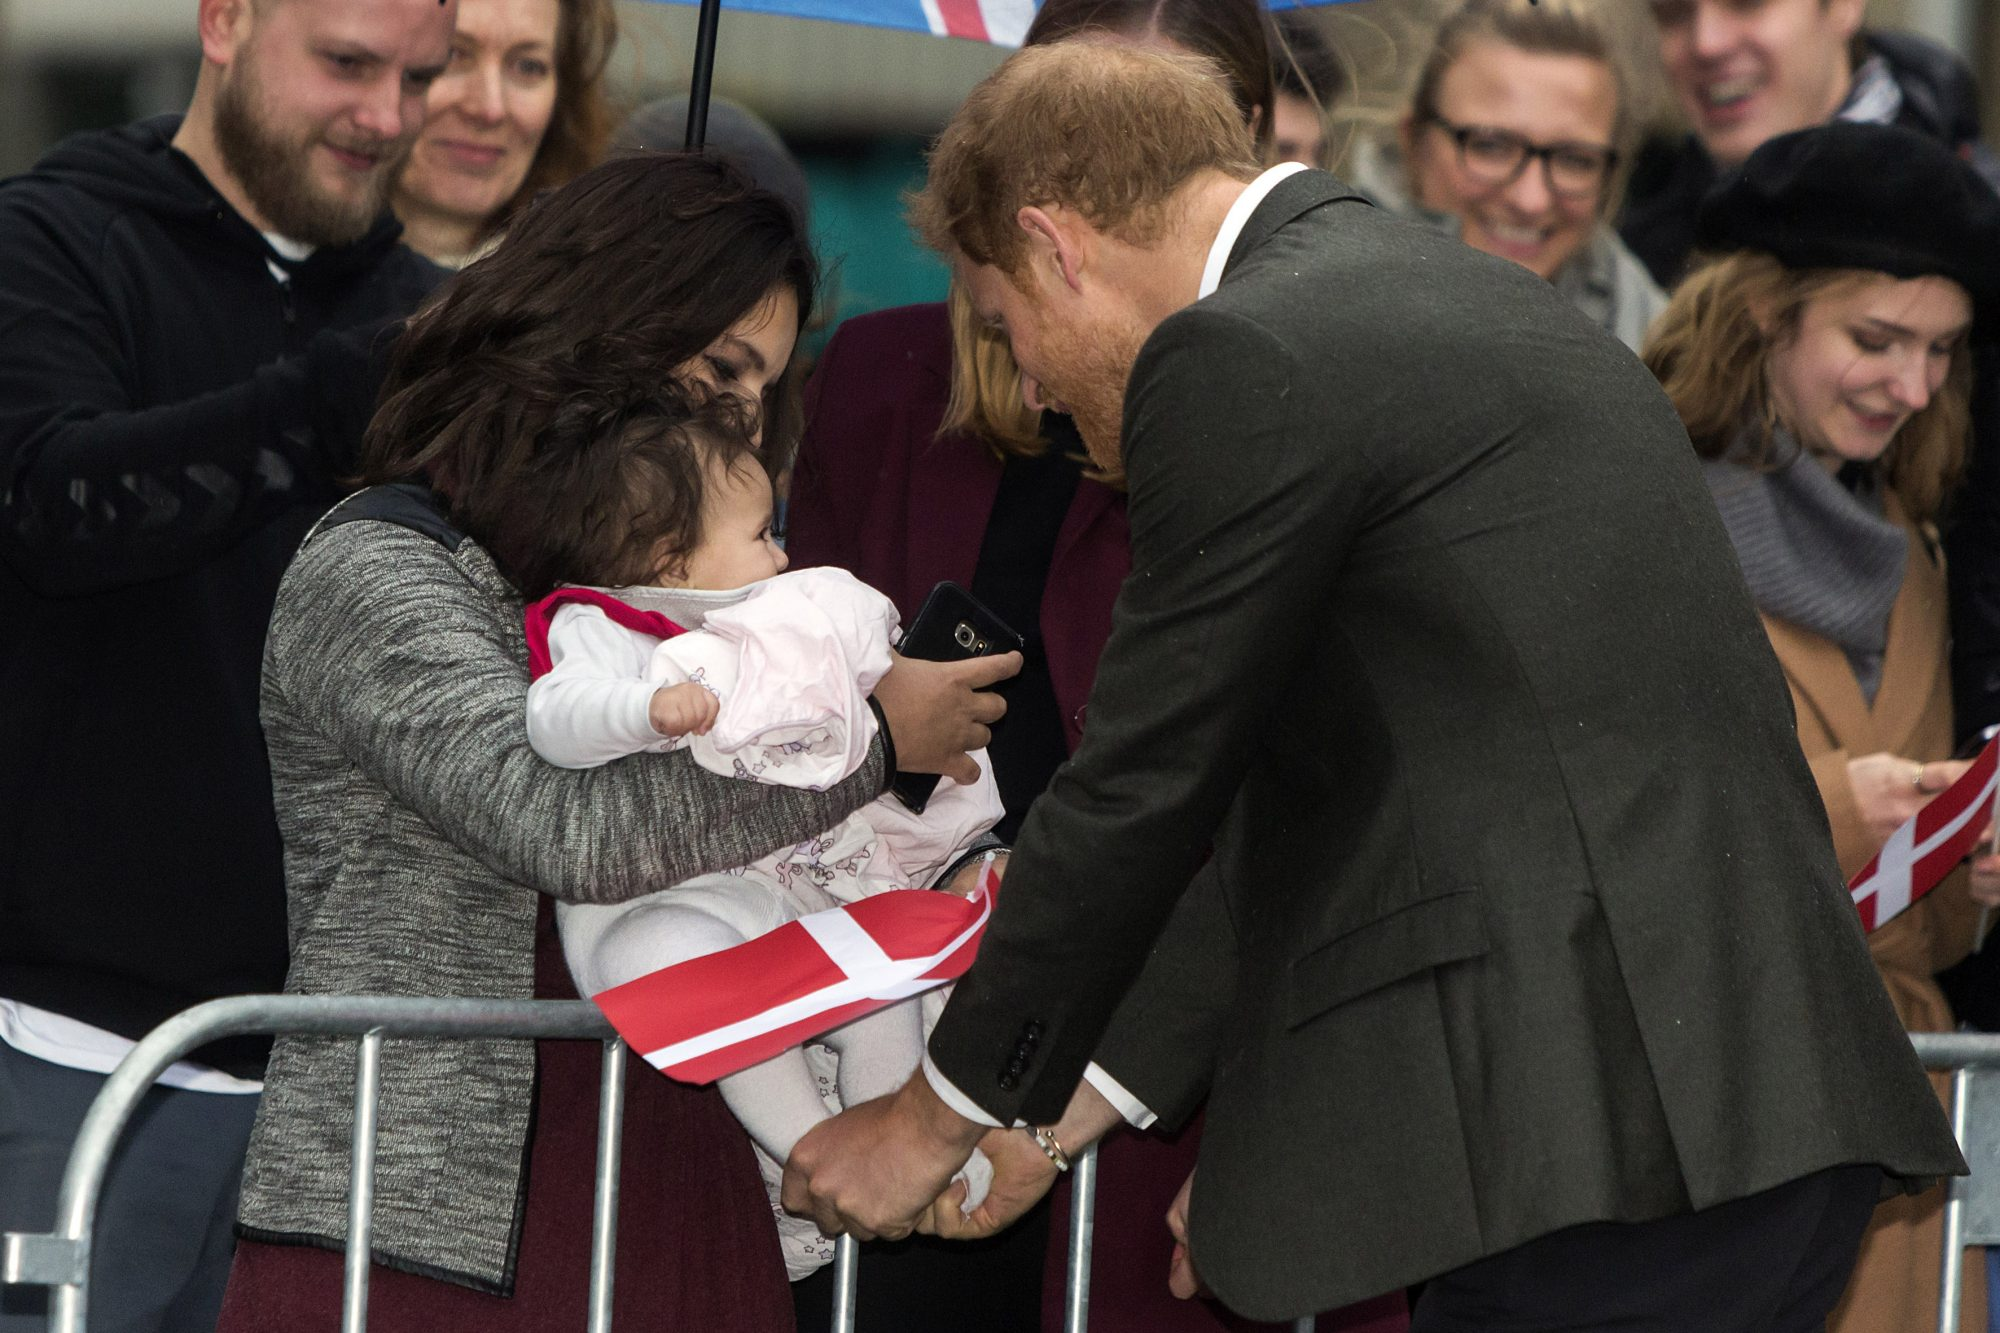 COPENHAGEN, DENMARK - OCTOBER 25:  (EDITOR'S NOTE: Alternative crop of image # 866308774)   Prince Harry holds the feet of a baby as he greets the public on arrival for Game Denmark during the first of his two days stay in Denmark on October 25, 2017 in Copenhagen, Denmark. At the photo the Prince holds the little baby's feeds -  maybe be course it was a cold and wet day. Game Denmark is a street sport activity center for youngsters. (Photo by Ole Jensen - Corbis/Corbis via Getty Images )